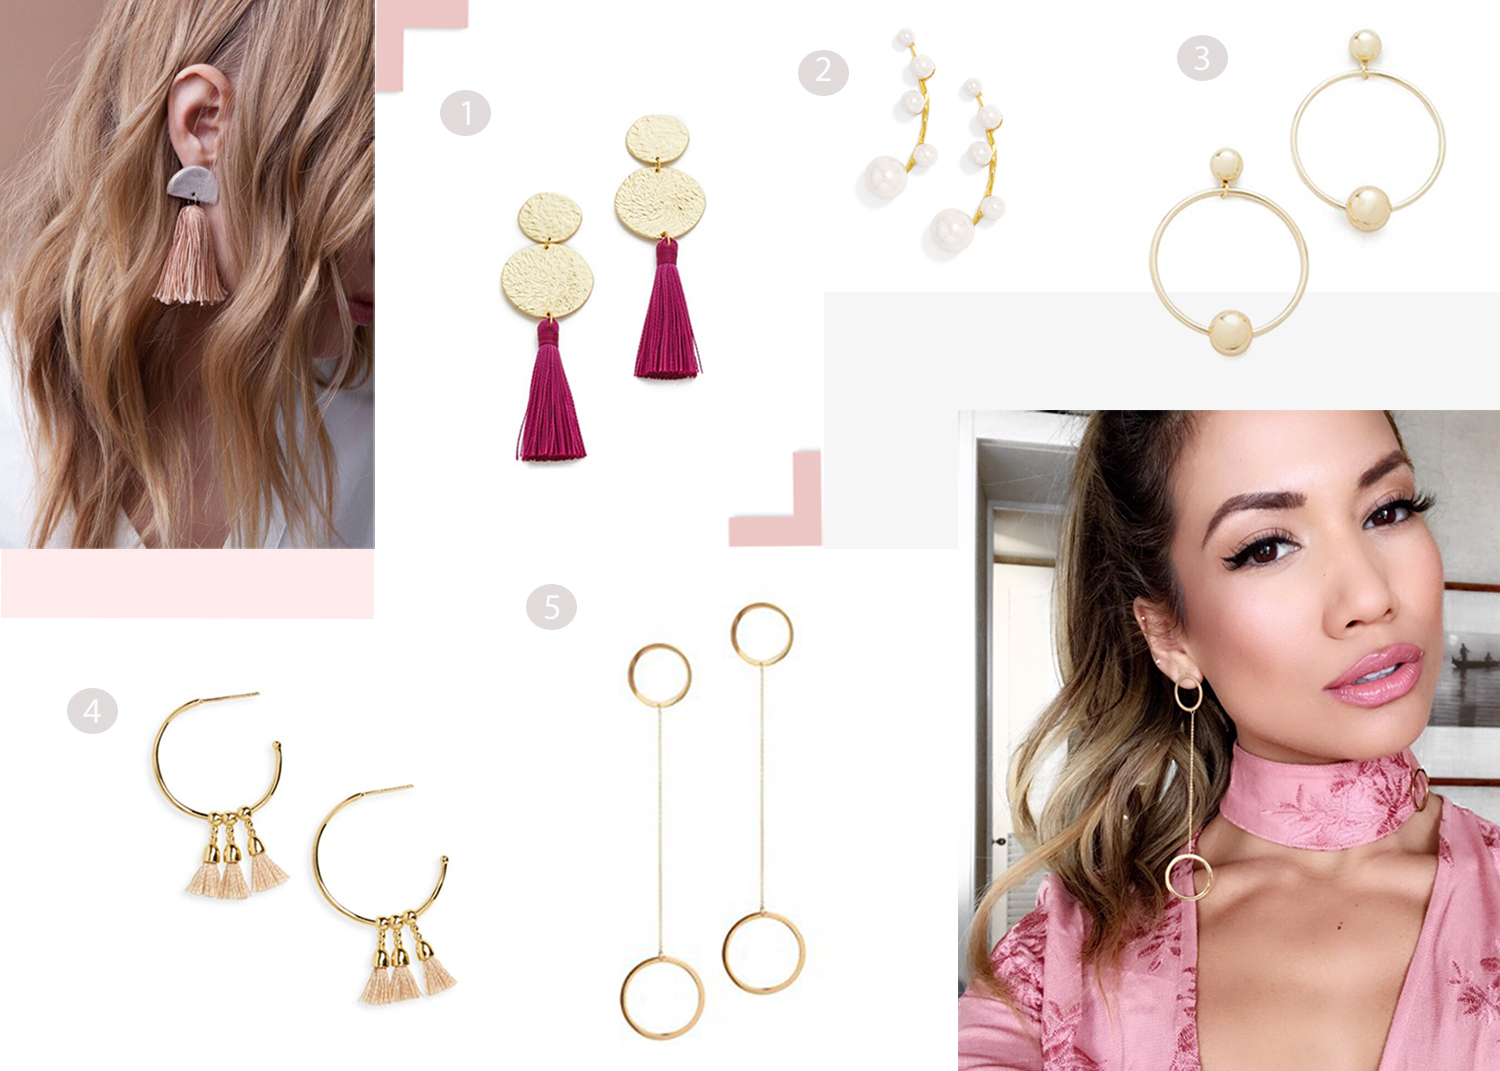 Jessi Malay wearing Jennifer Zeuner Earrings